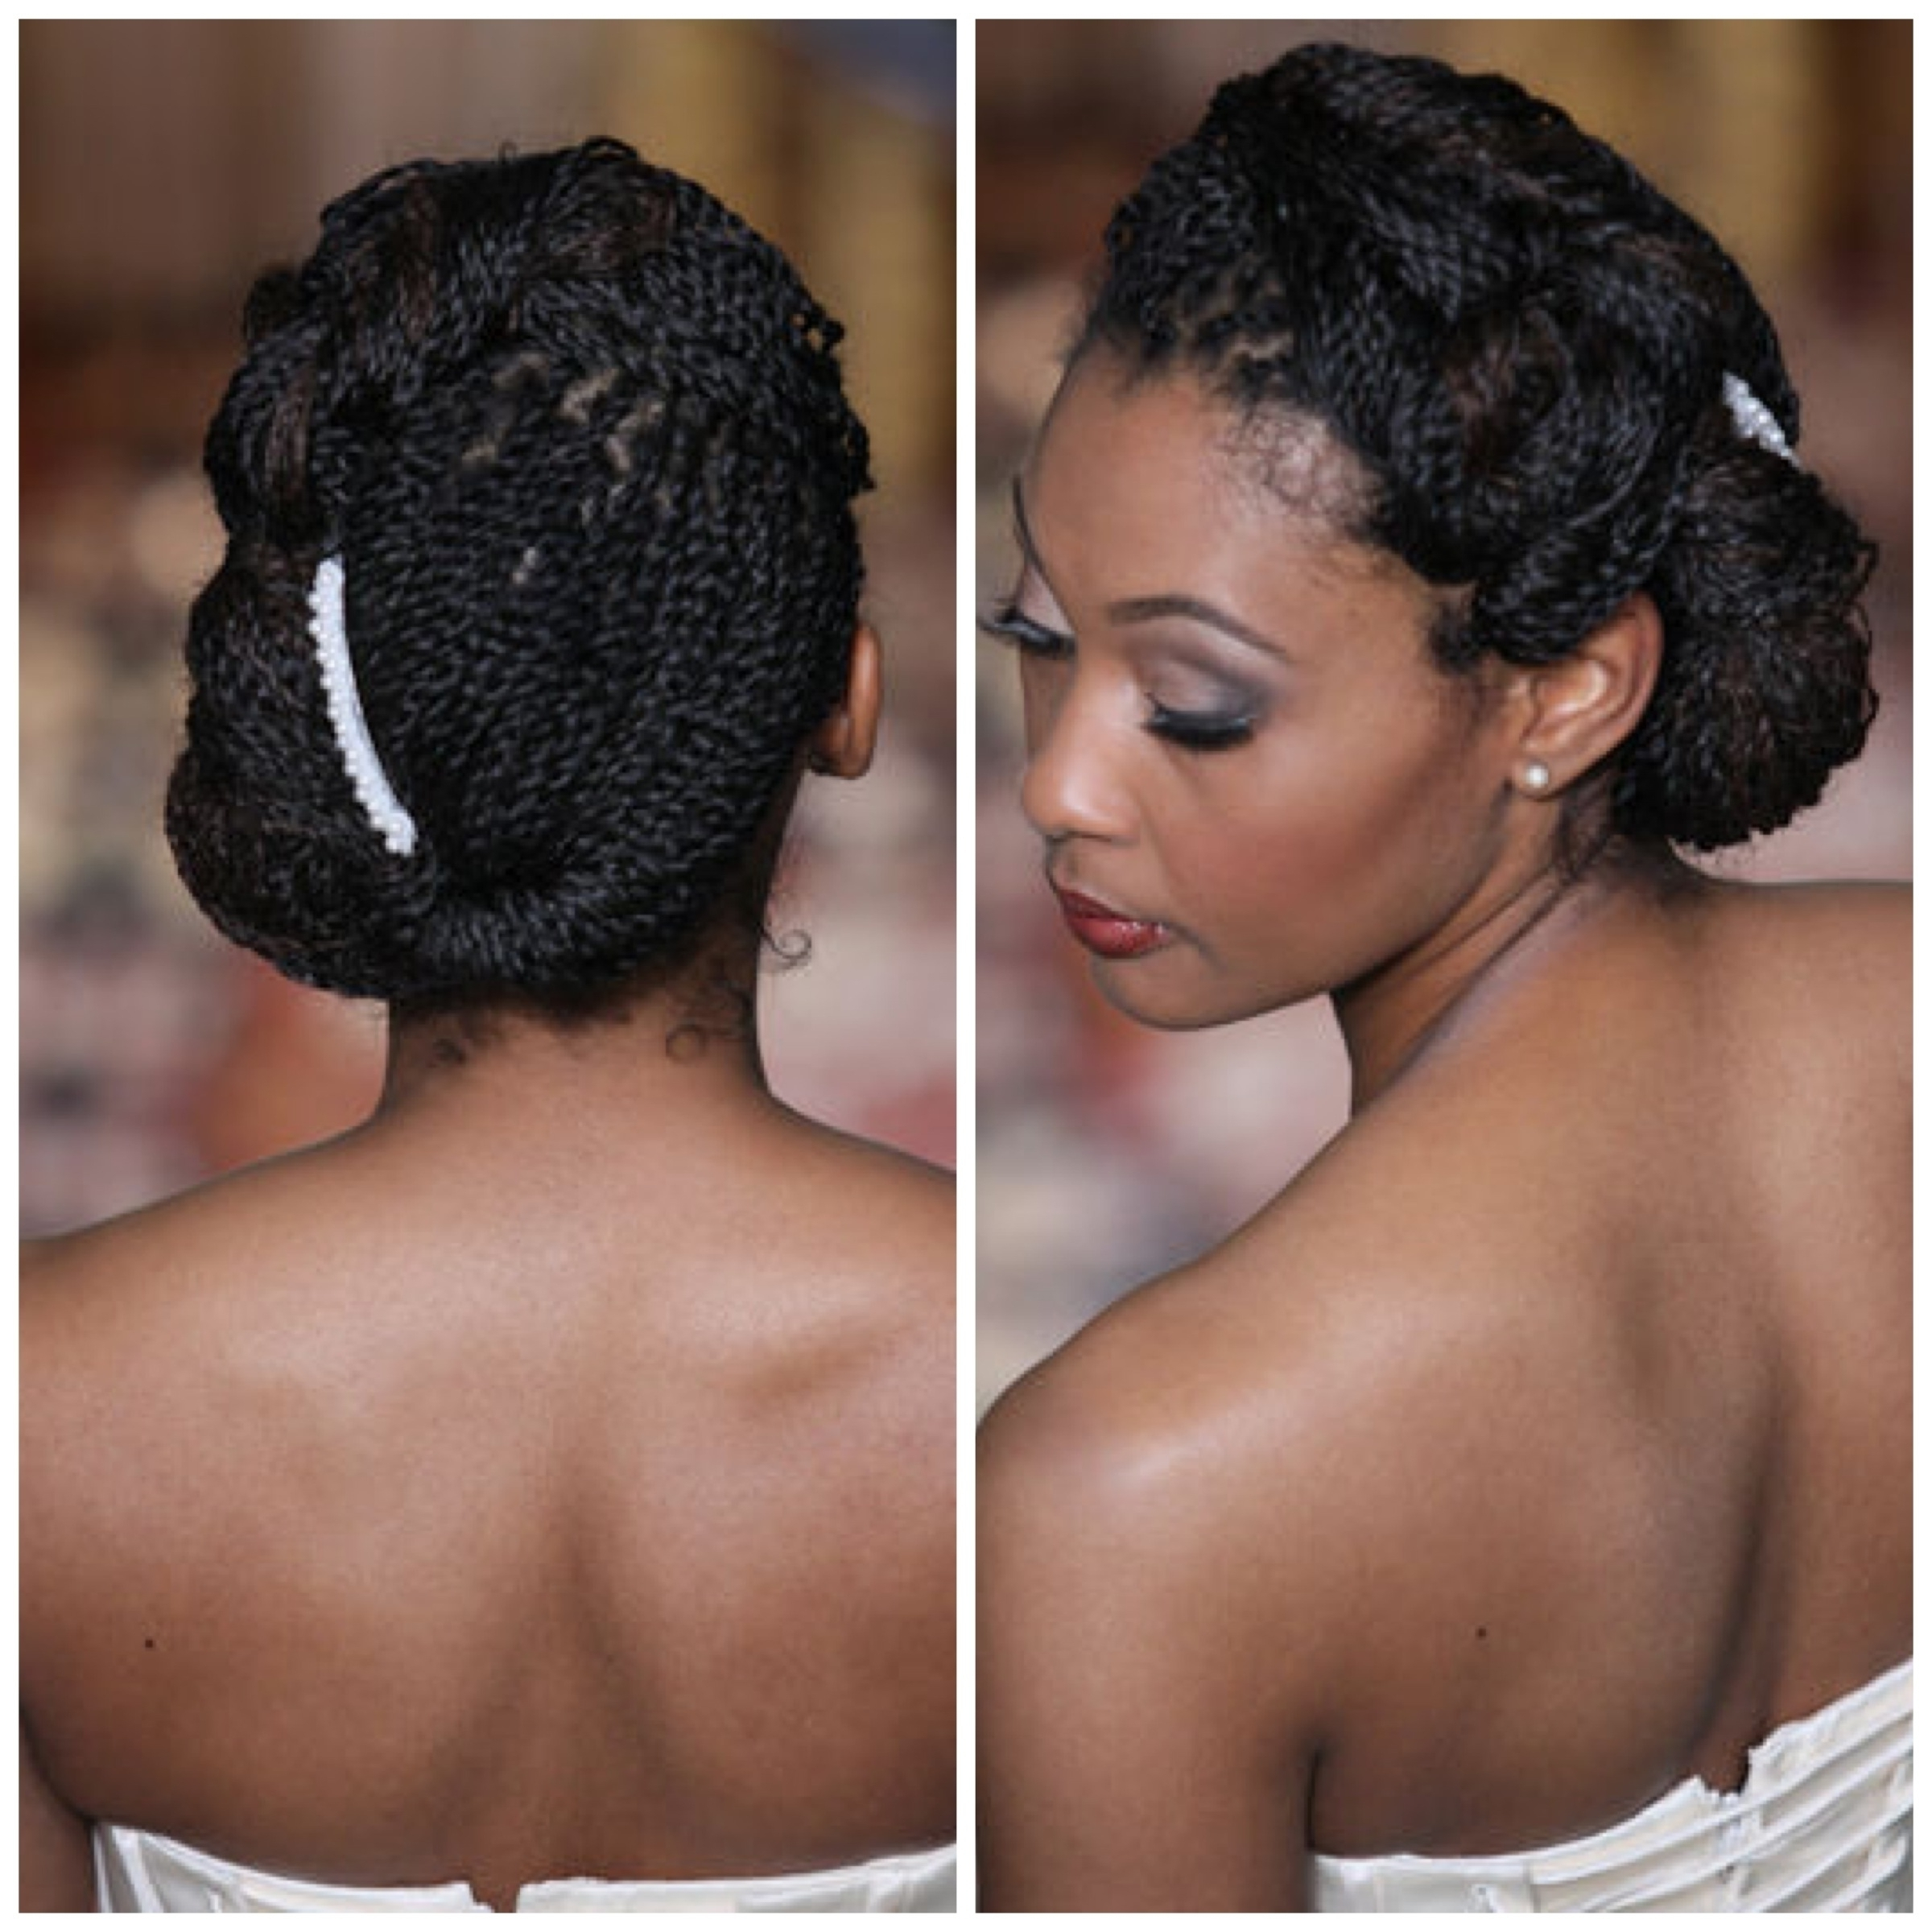 Astounding African American French Roll Hairstyle Inside 25 Updo Regarding African Updo Hairstyles (View 5 of 15)